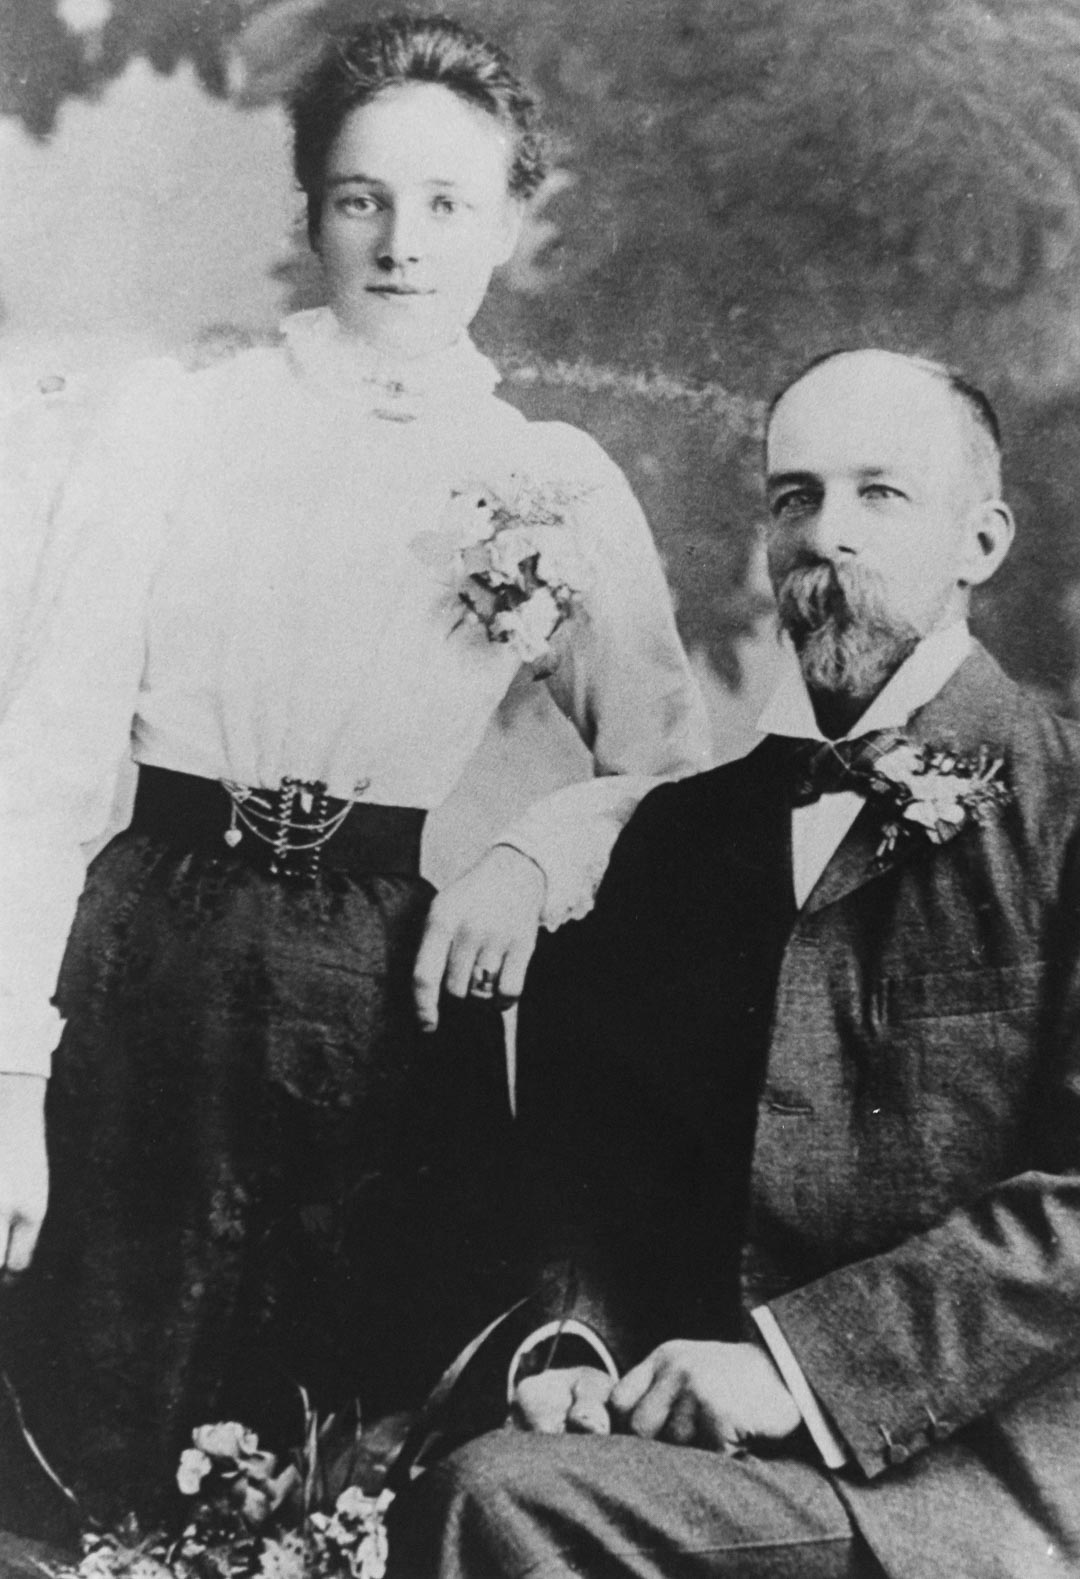 Blanche Draper (nee Hurrey), 1880 - 1968 and James Draper, 1863 - 1940; the author's grandparents.  Pictured during their engagement.  They were married in 1900.